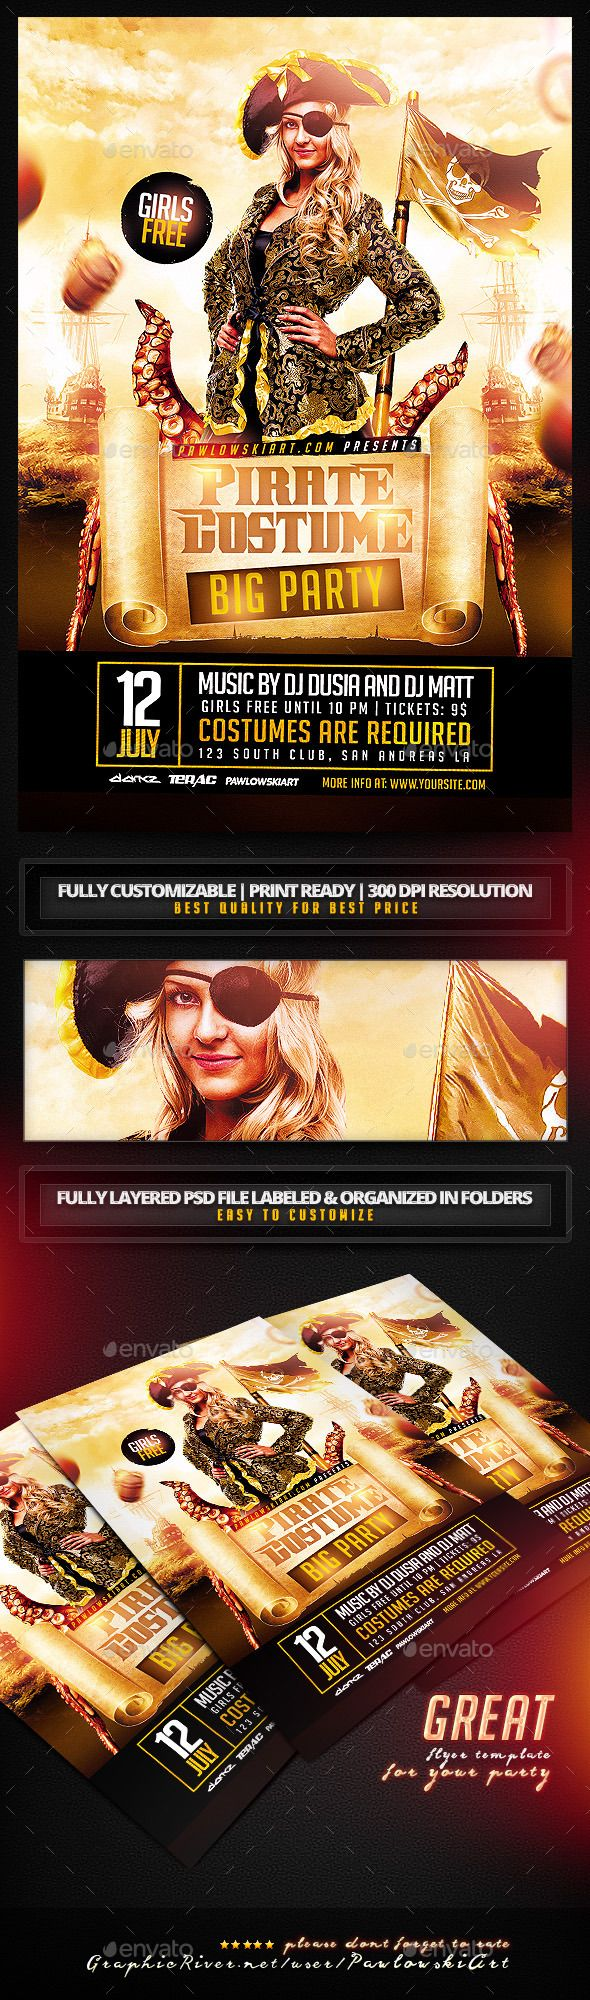 Pirate Costume Party Psd Flyer Template  Psd Flyer Templates